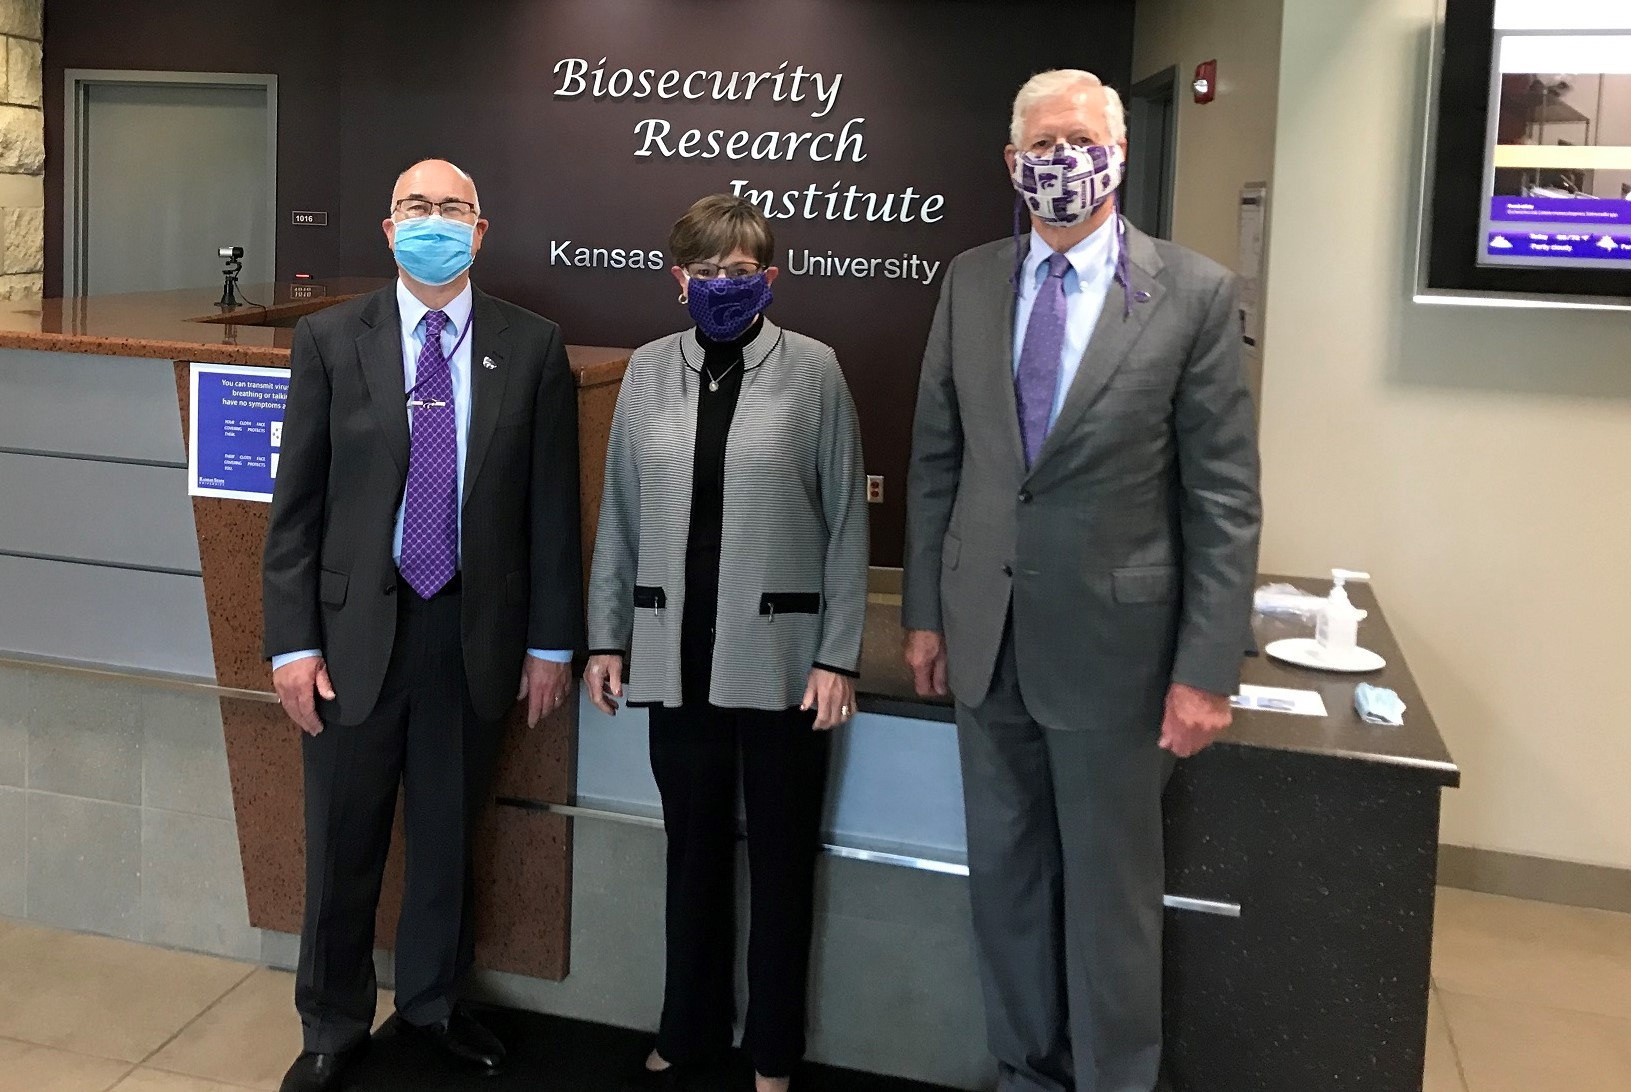 Dr. Higgs, Governor Kelly and President Myers at the Biosecurity Research Institute.